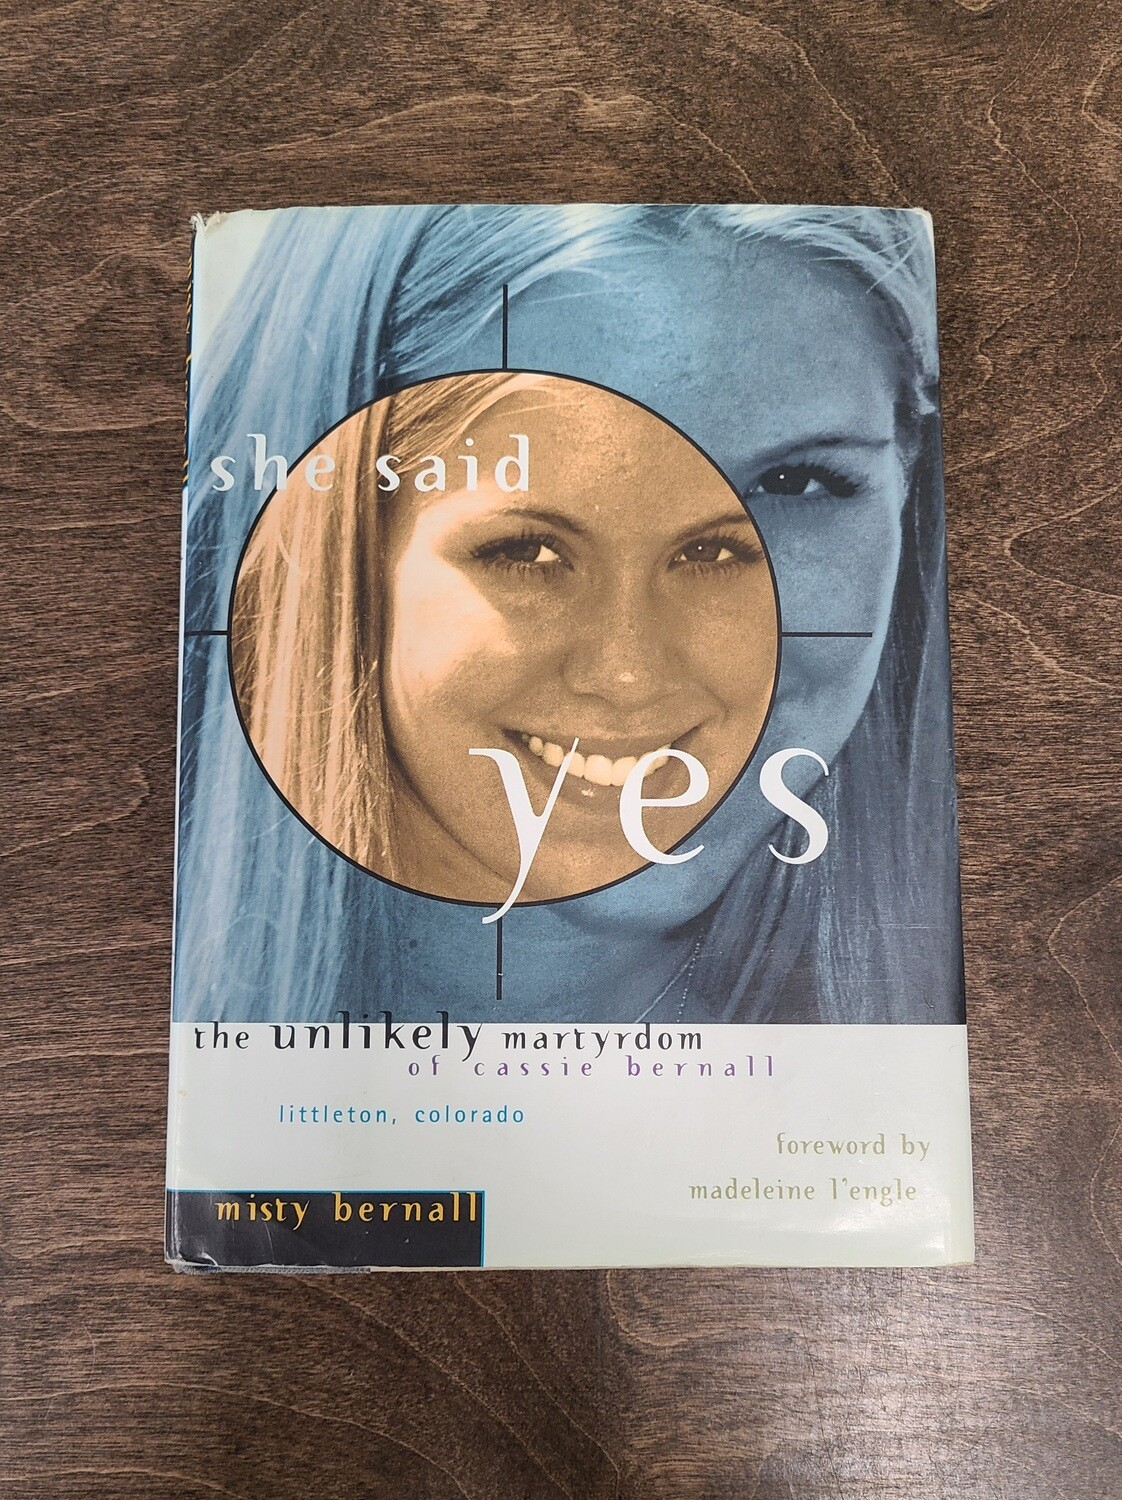 She Said Yes: The Unlikely Martyrdom of Cassie Bernall by Mistry Bernall and Madeleine L'engle